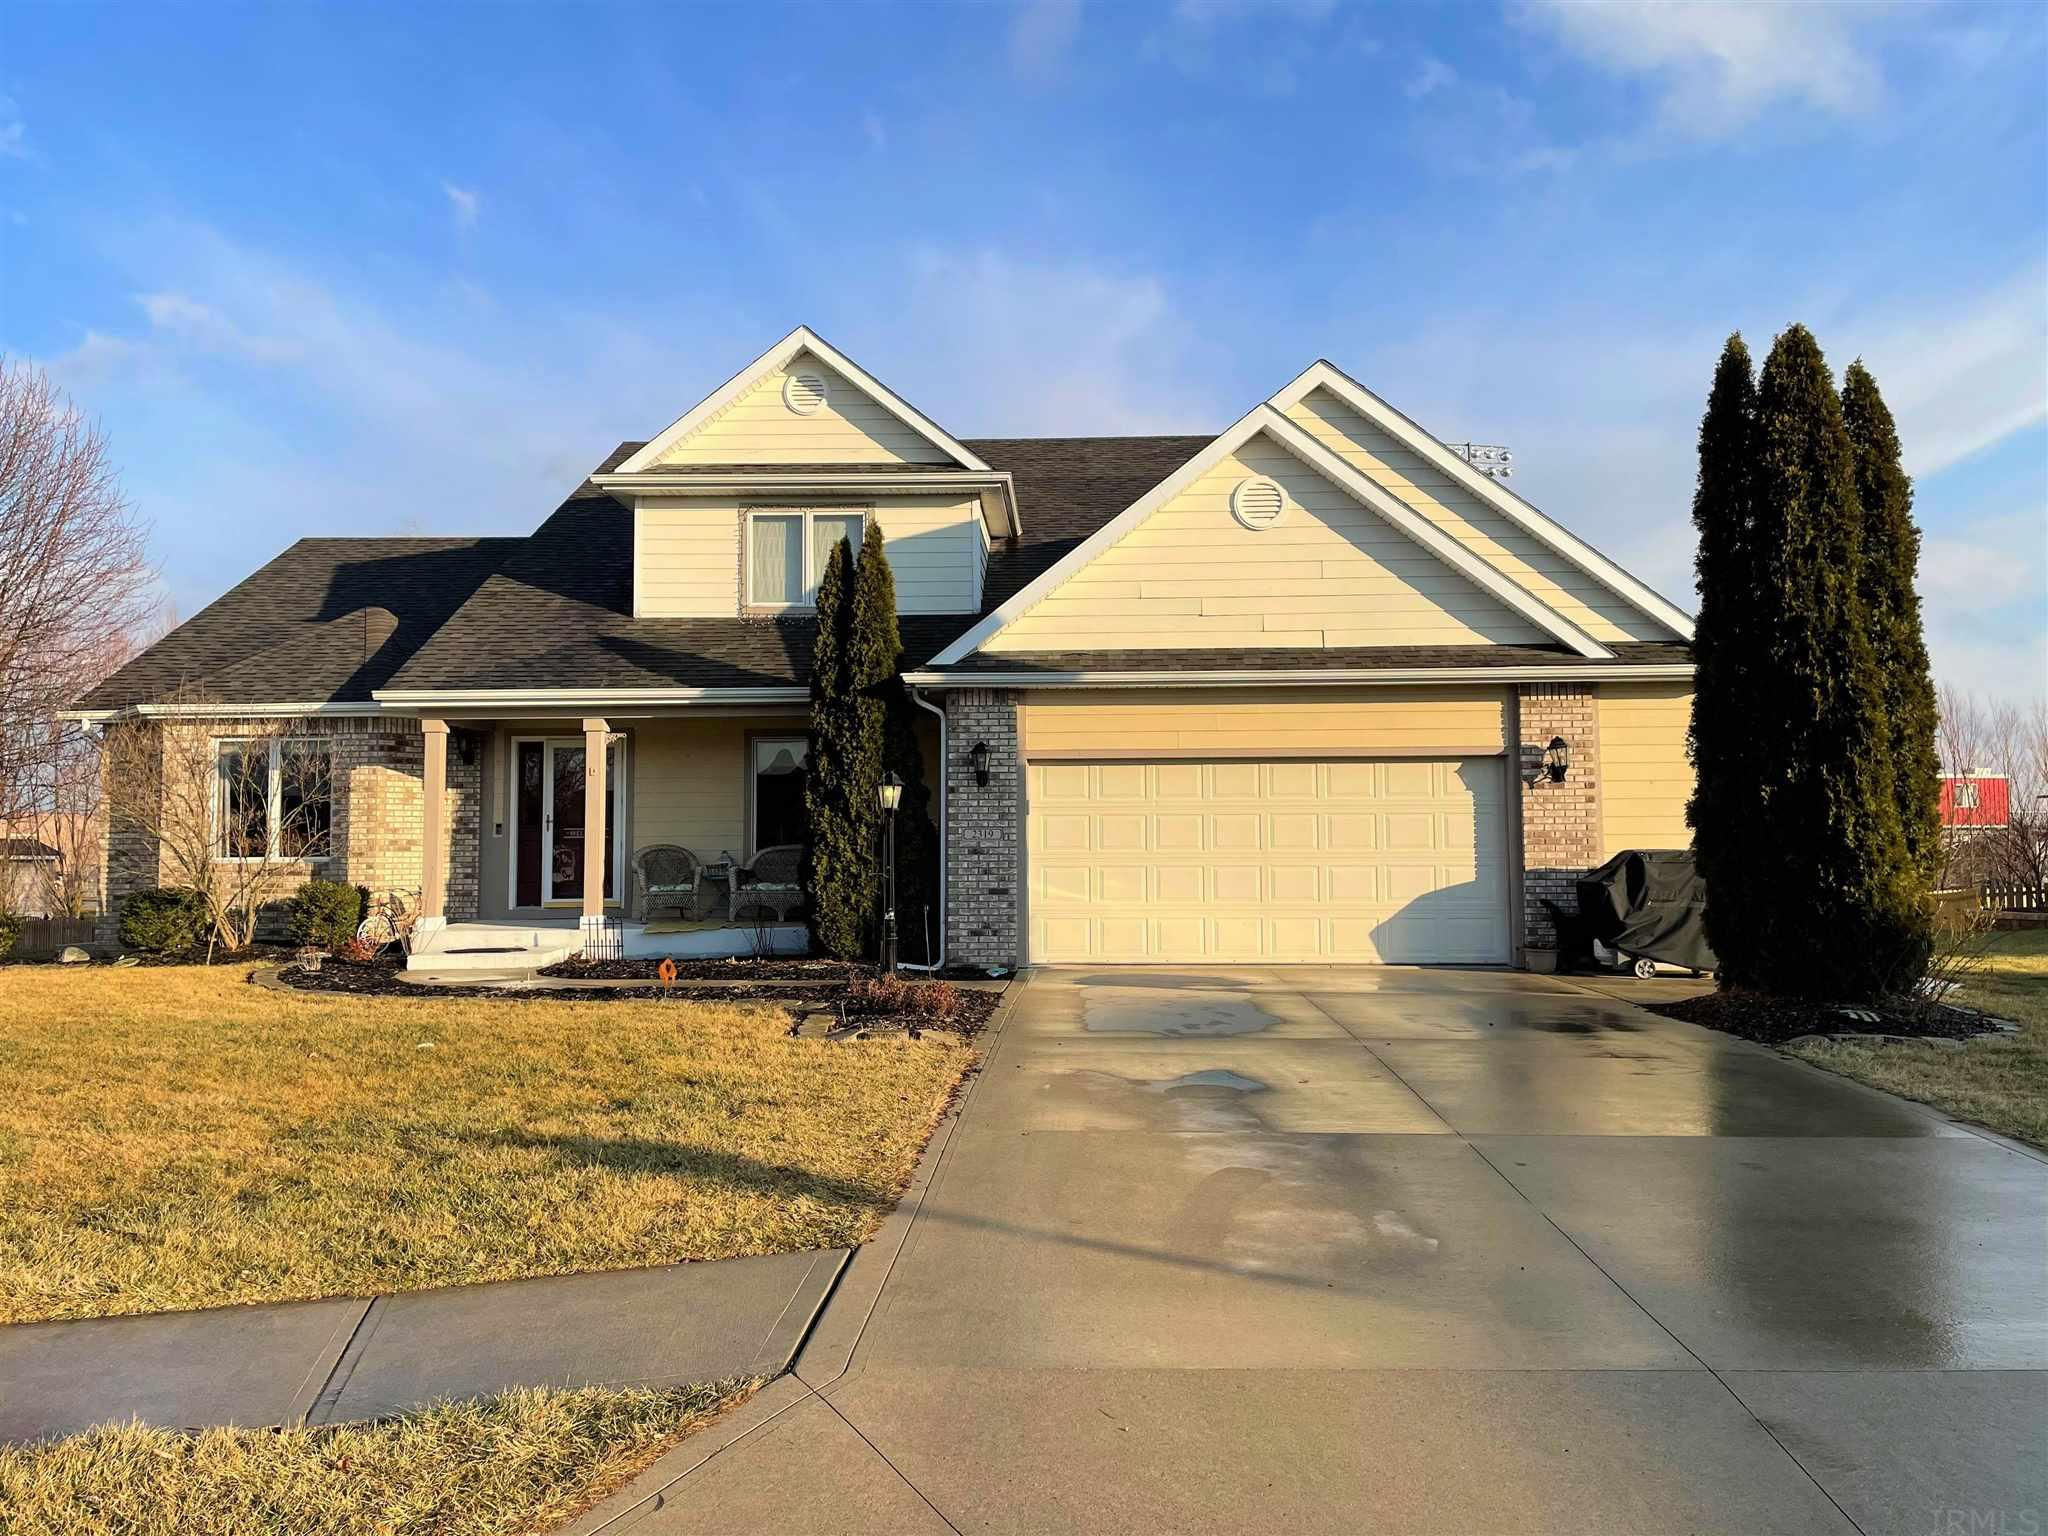 This amazing 3700+ sq. ft. 1 owner home features 4 (possibly 5) bedrooms, 3 1/2 bathrooms on a quiet cul-de-sac in SW Allen County. The foyers and formal dining room both have brand new floors which also lead into the Great Room w/ Sunlit oversized windows & gas log fireplace with cubby for artwork or TV above. Check out the culinary kitchen, with tons of cabinet space, new floors installed in 2019, an island for entertaining, and great eat in area that features French doors that open up to the brand new deck. Main Level Master Suite features new carpet in 2020, tray ceiling, a 'to-die-for' master-en-suite w/ jetted soaking tub, dual sink vanity, stand-up shower & separate water closet with large walk-in closet.  Upstairs you'll find 3 bedrooms and a 2nd full bathroom with double vanity.  The Lower Level features a huge family room, an office area, and a 28x14 room with full bathroom and closet that is currently being used as a second master and workout room.  A mostly finished room is tucked away in the lower level, perfect for a mancave (it's current use) office, play area or craft room.  Outside you'll find nearly .5 acre fenced in yard. There's nothing left to do except move right in and start making memories to last a lifetime.